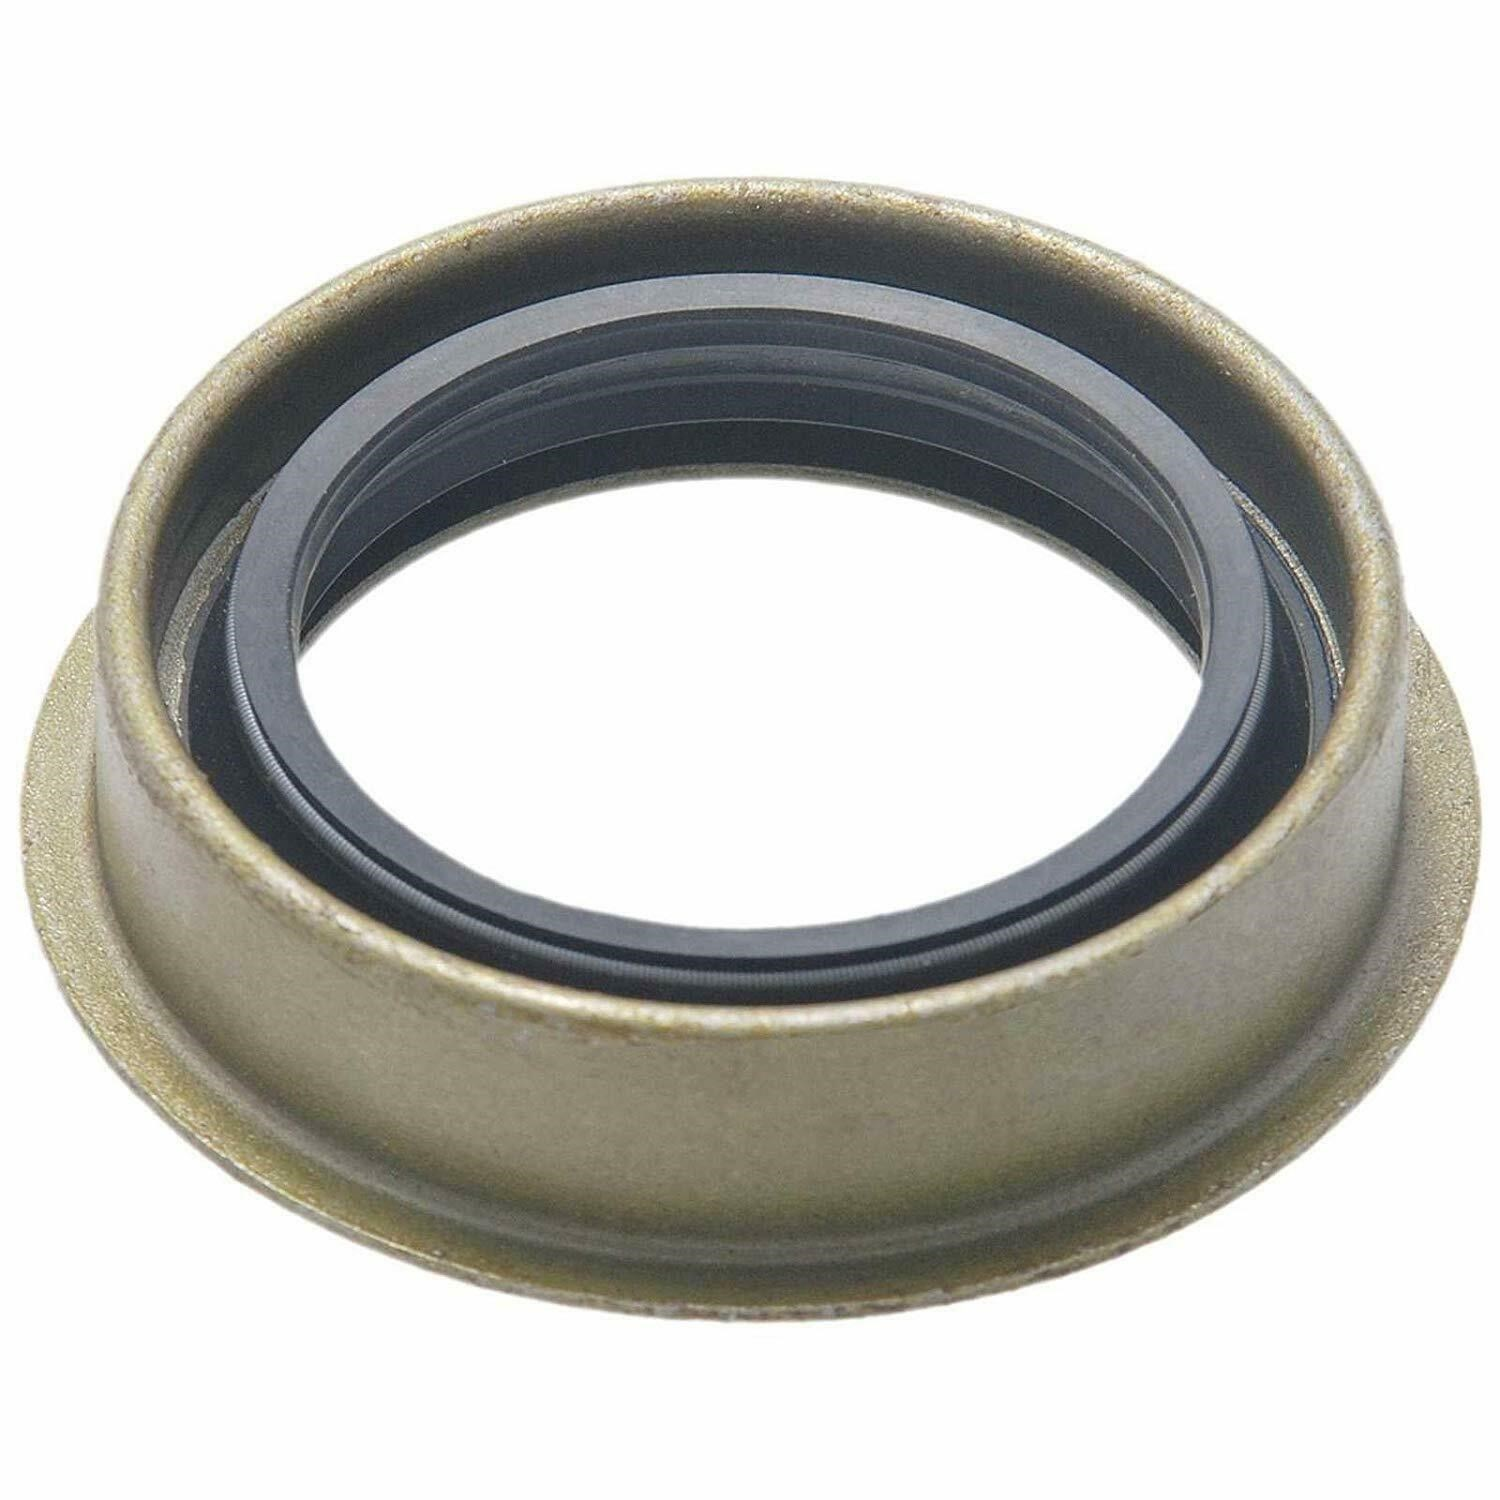 30651787 - 2x Differential /Driveshaft Oil Seal C30, C70, S40, S60, S80, V40 30651787